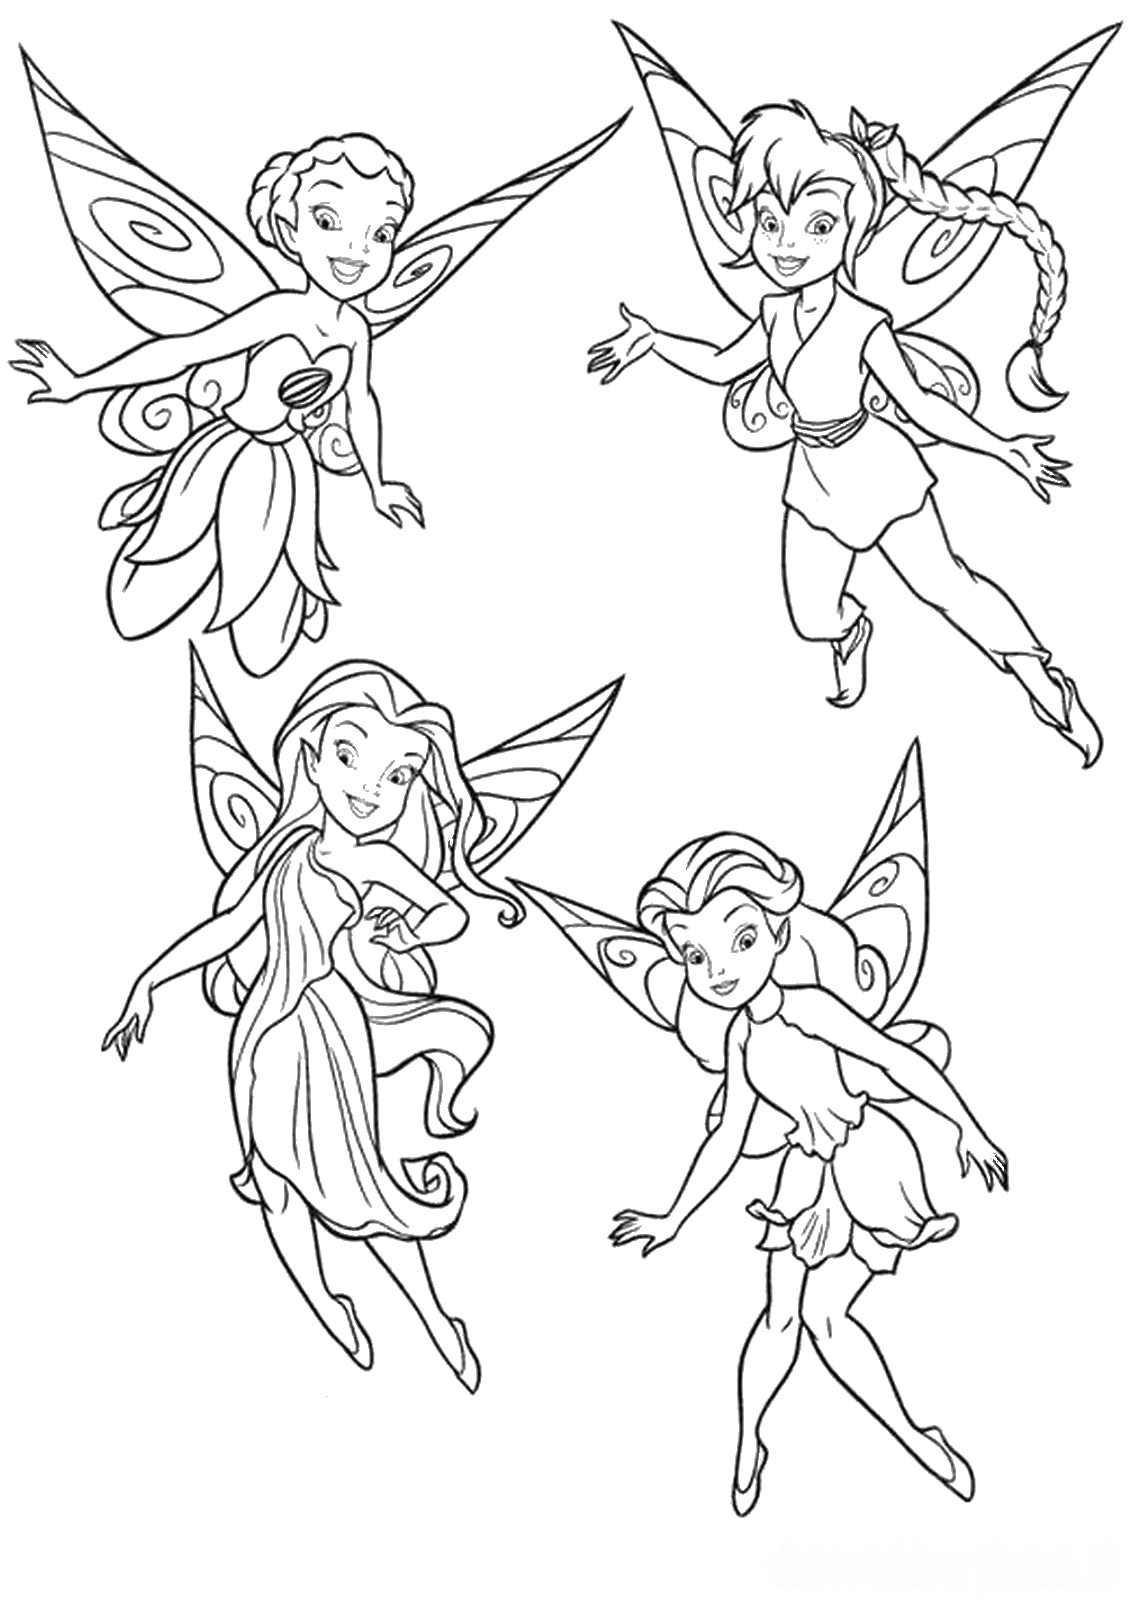 tinkerbell coloring pages free printable coloring pages tinkerbell coloring pages and clip art coloring tinkerbell pages free printable